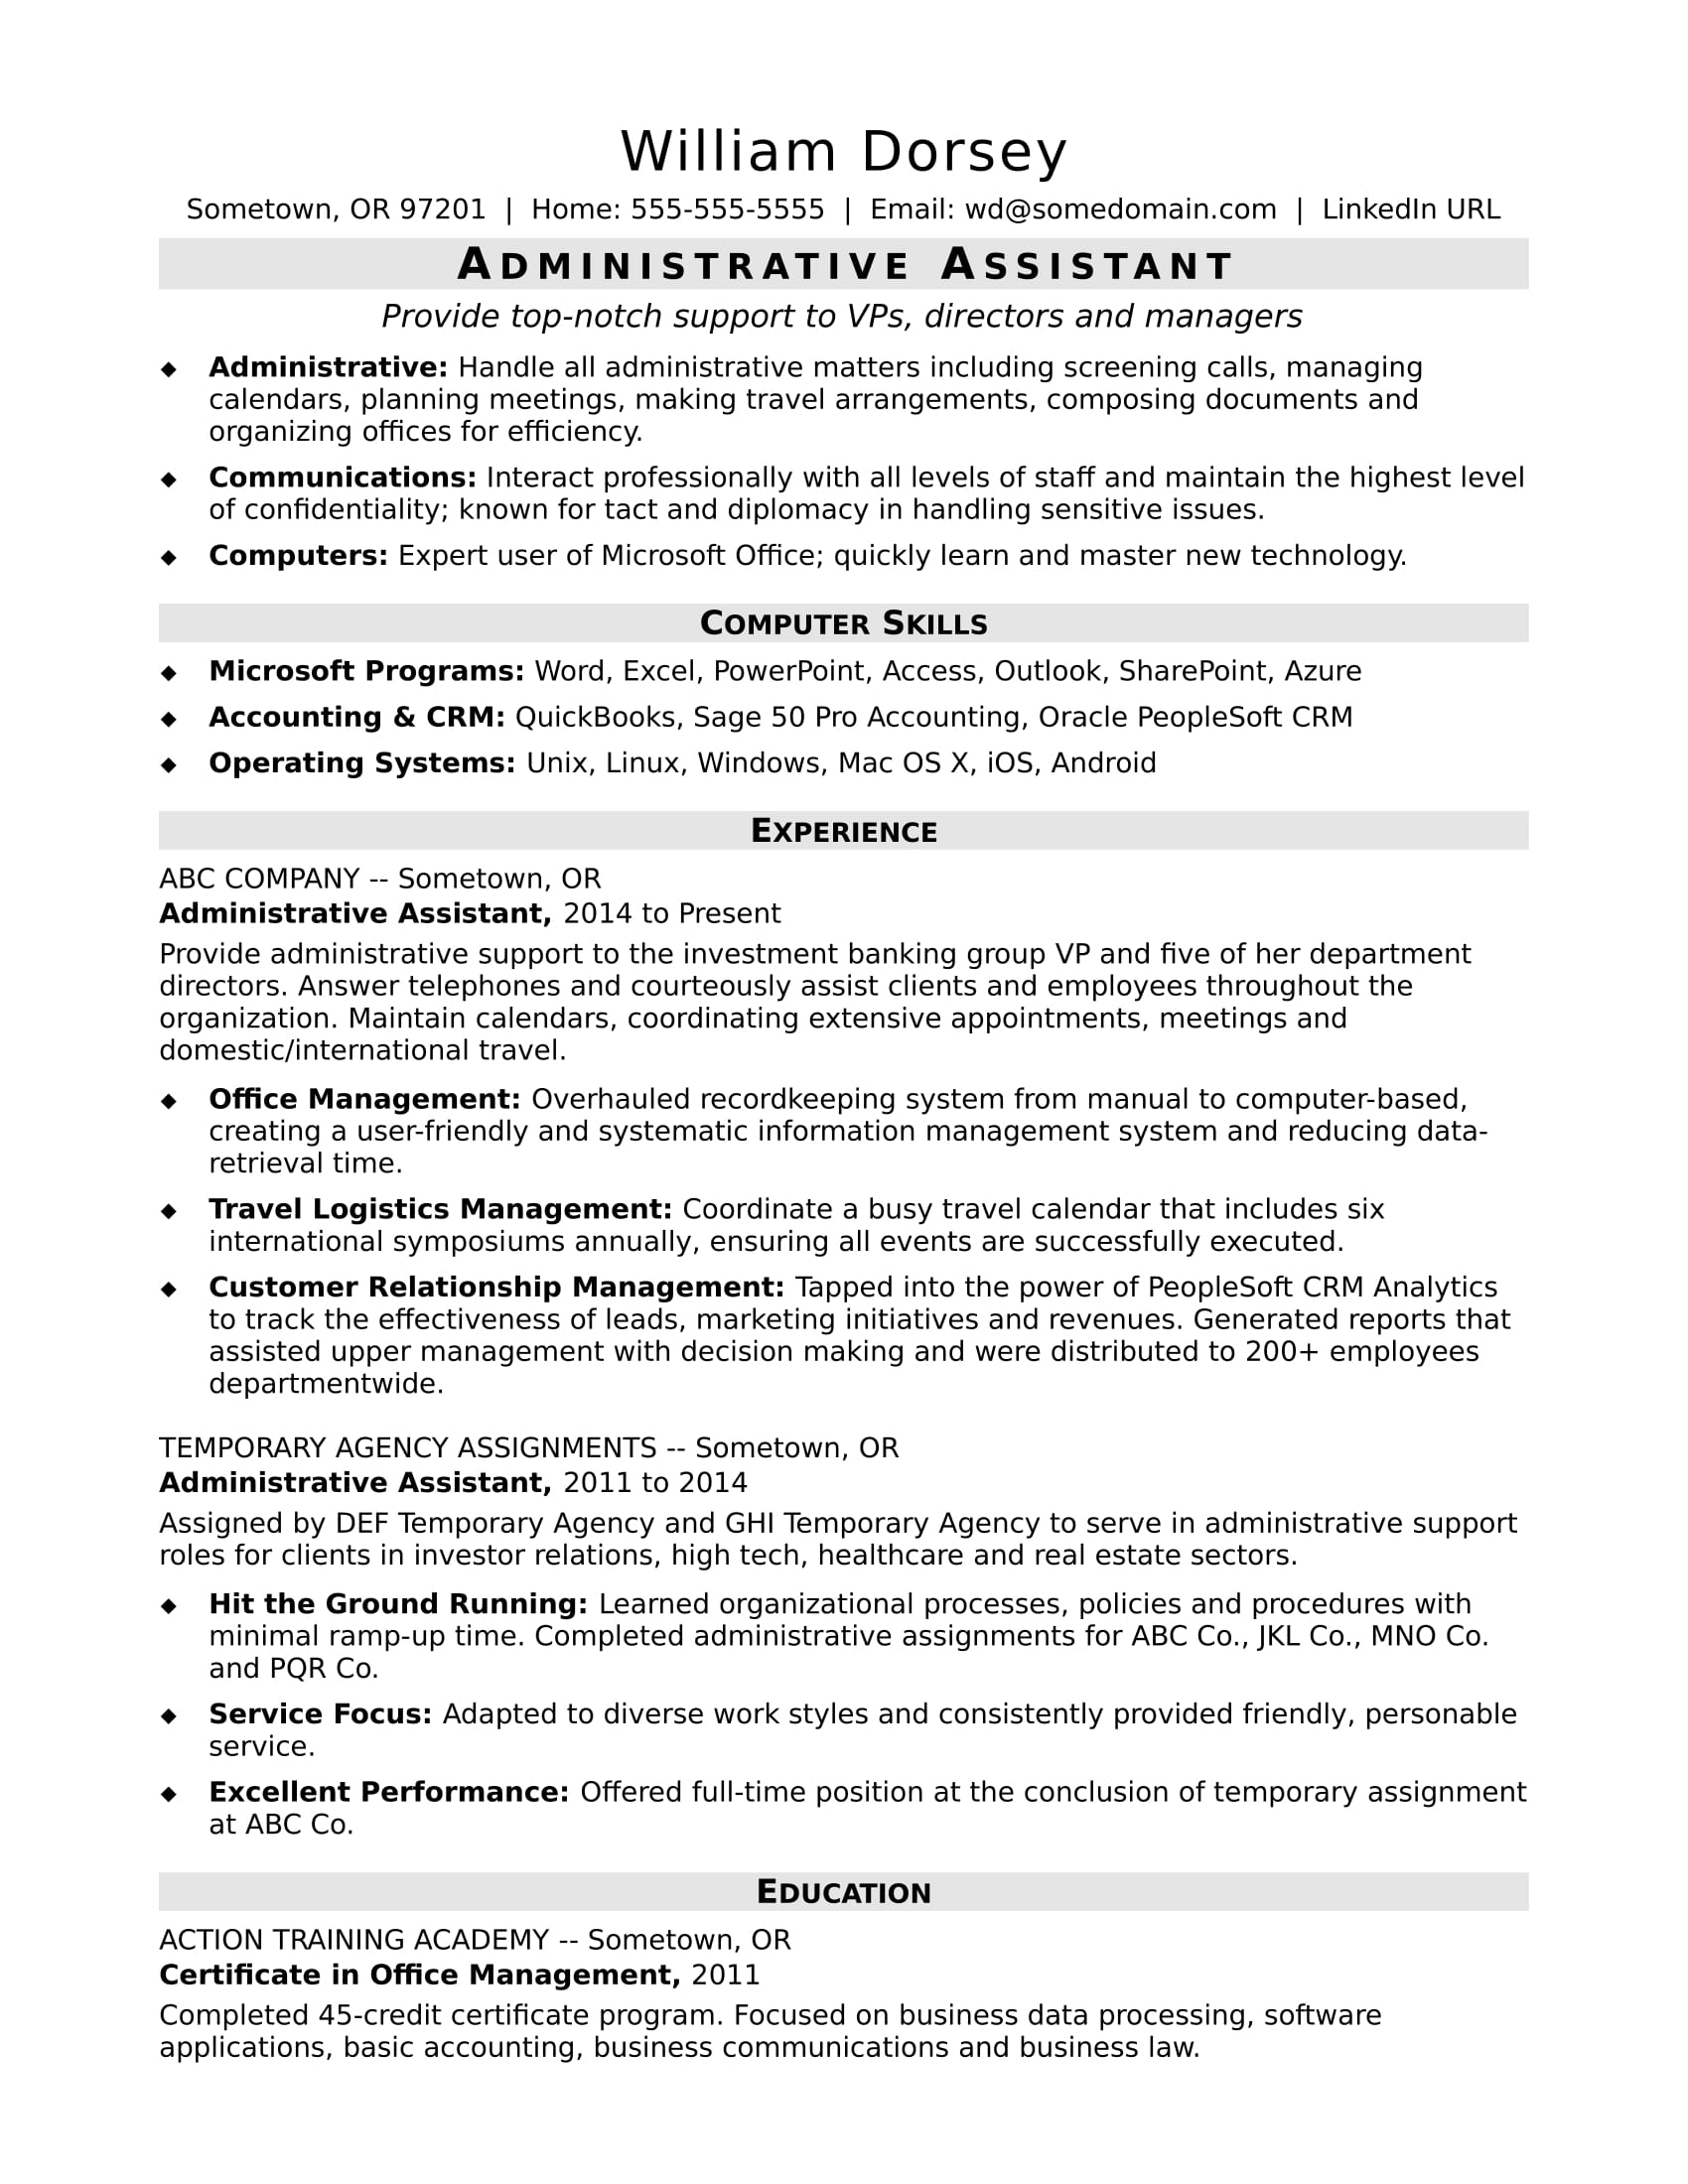 sample resume for a midlevel administrative assistant - Administrative Assistant Duties Resume Sample